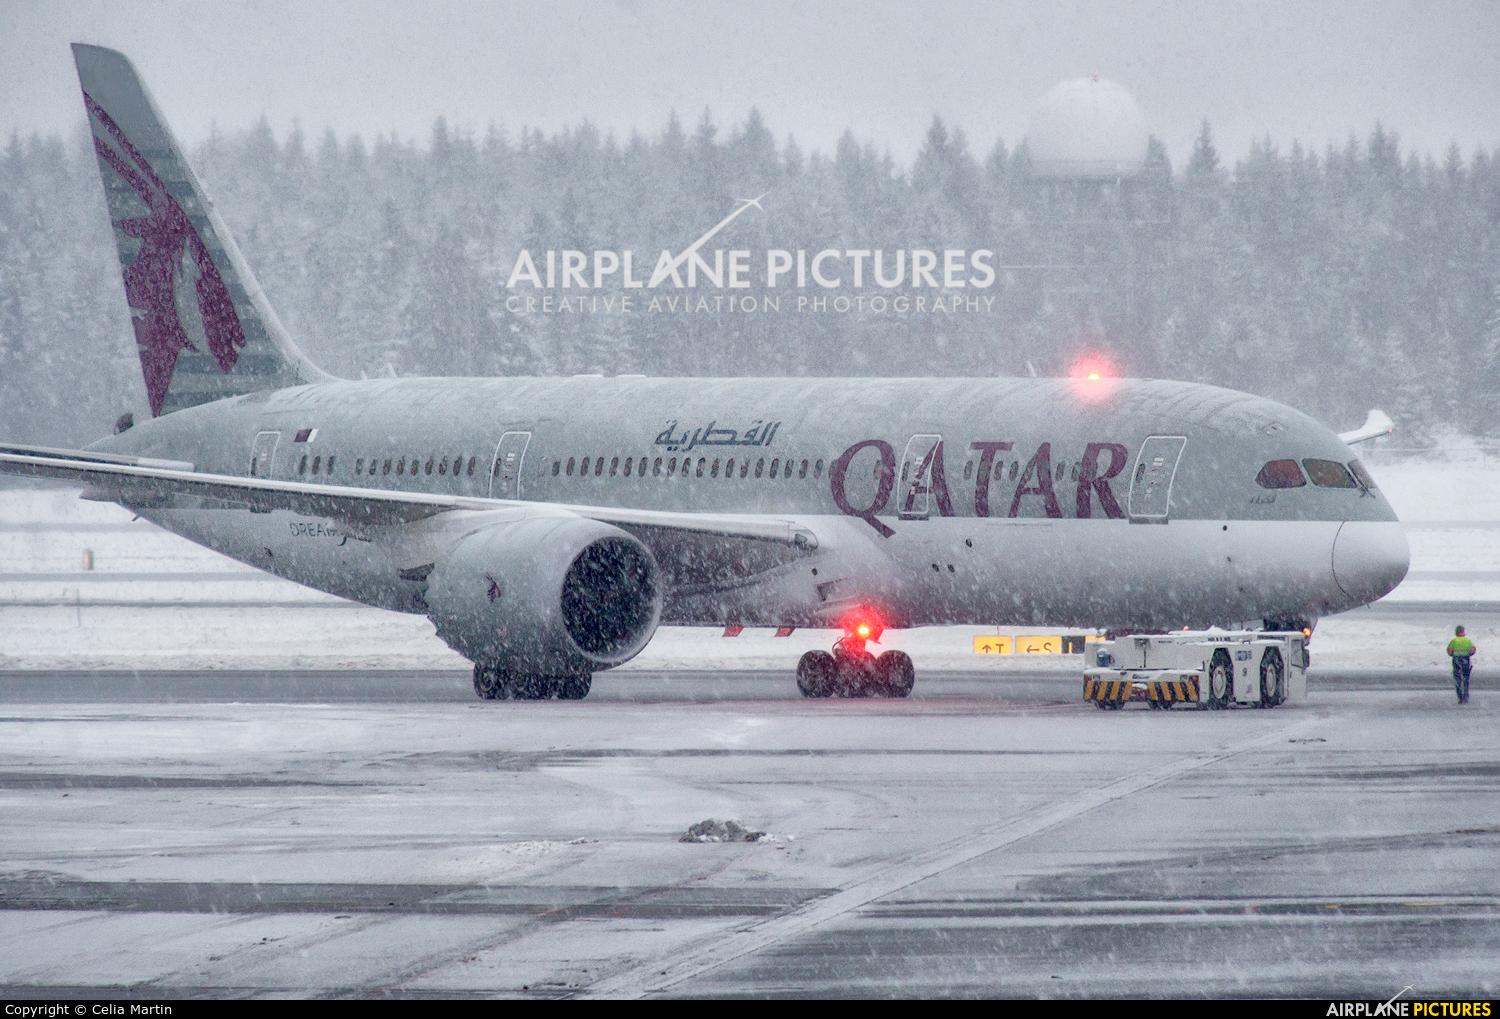 Qatar Airways A7-BCA aircraft at Oslo - Gardermoen